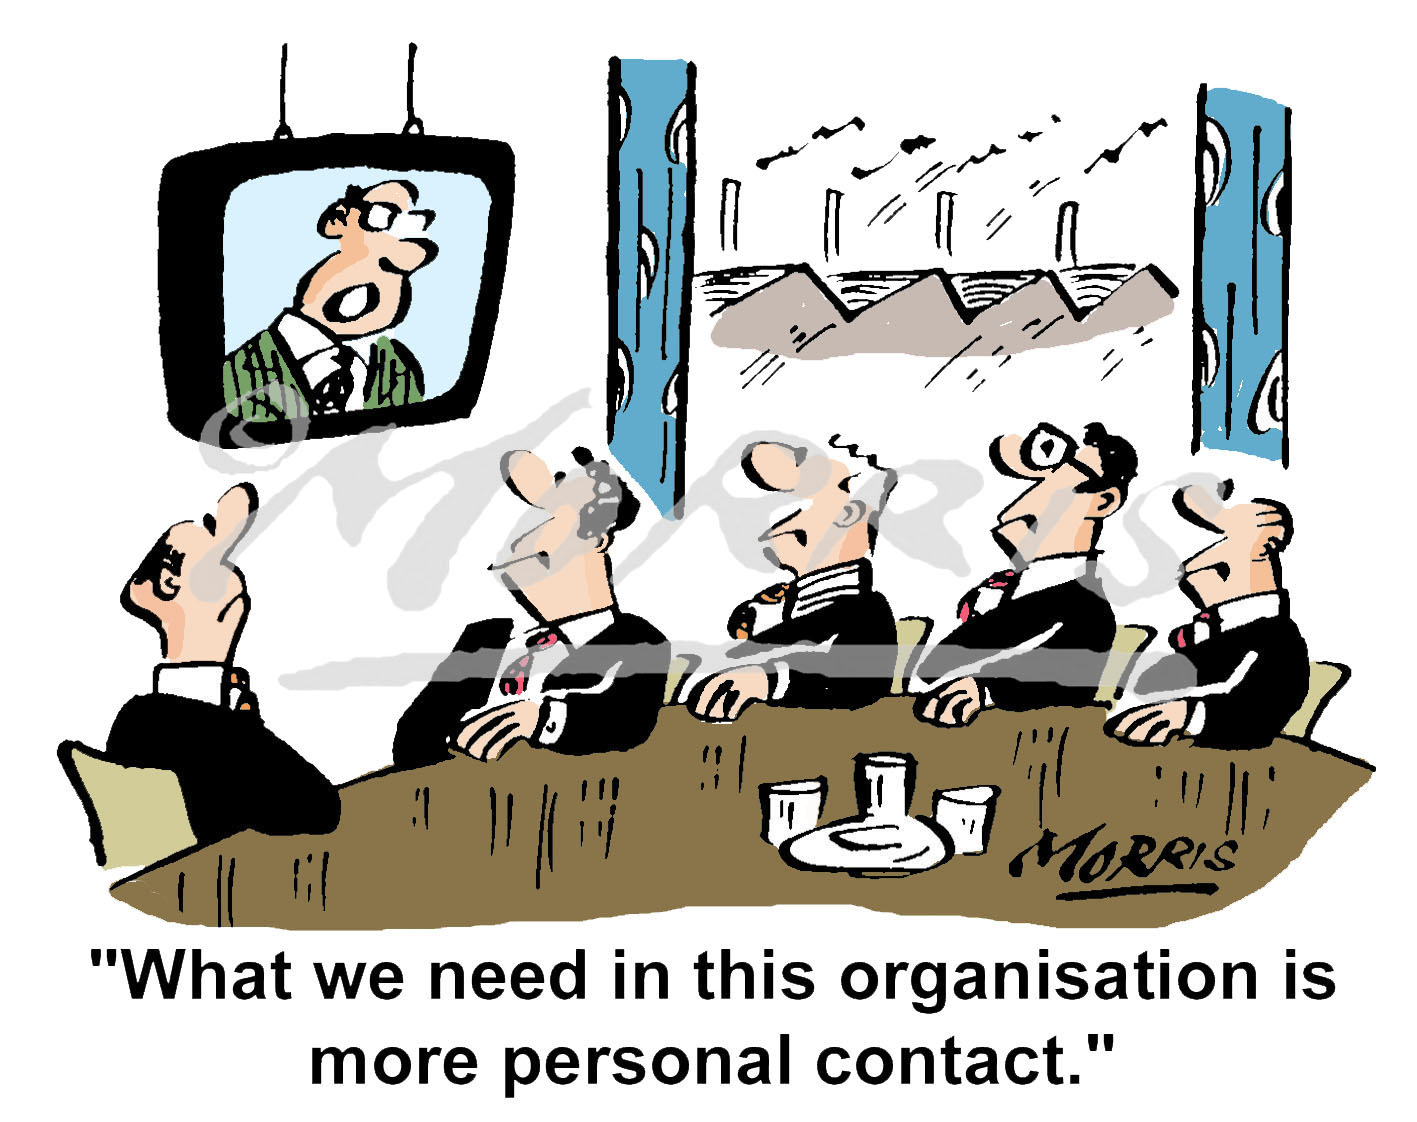 Office communication meeting cartoon – Ref: 2388col